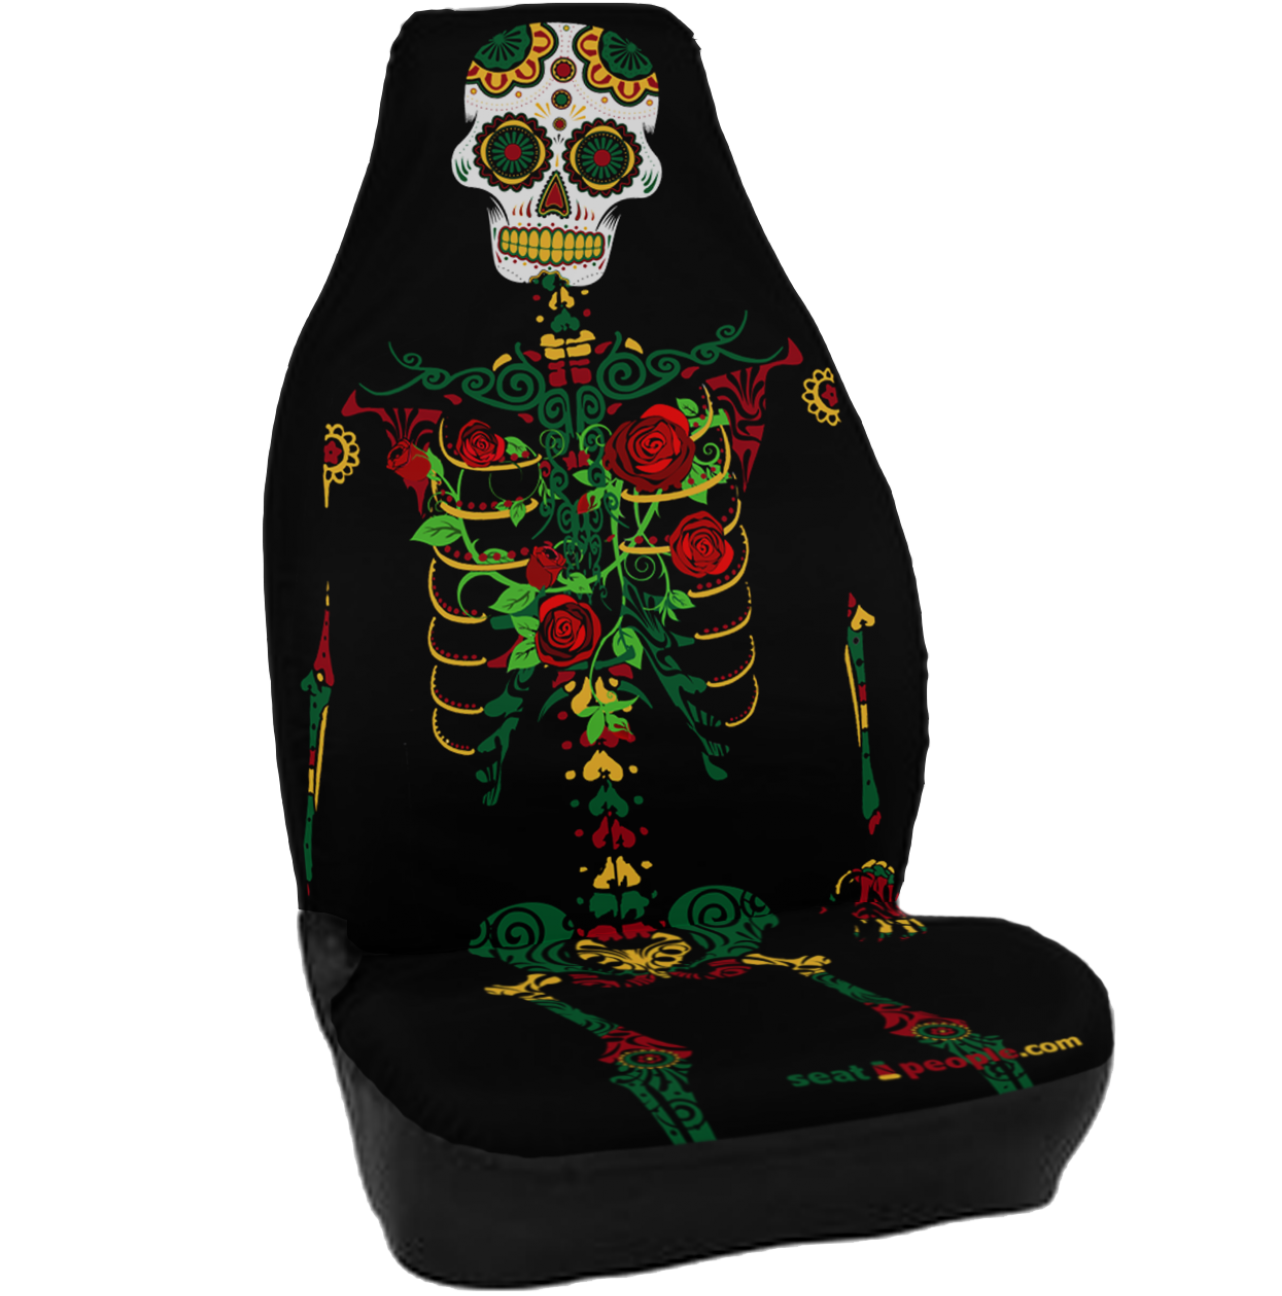 Day Of The Dead Seat Cover